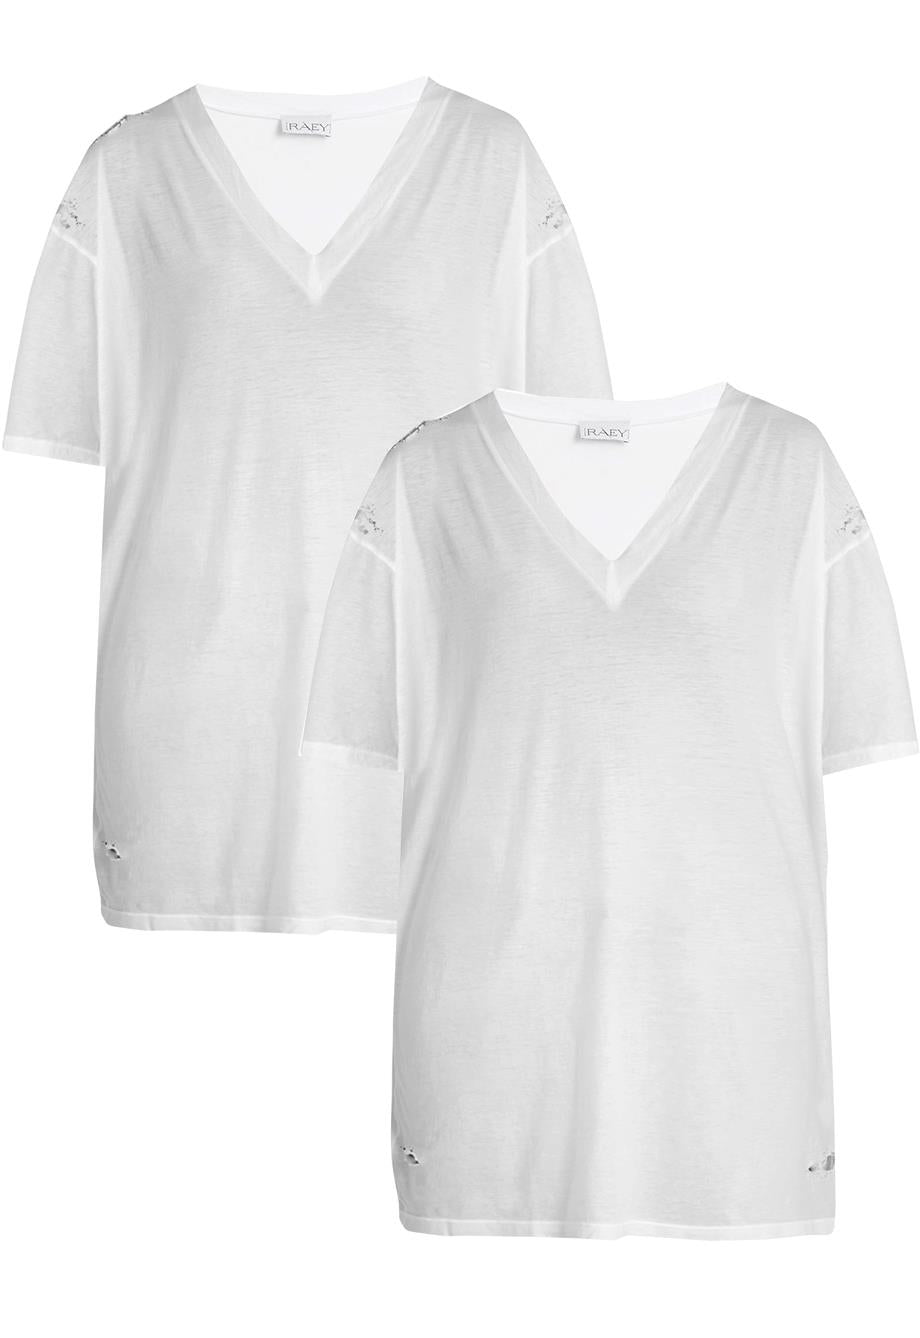 RAEY SET OF TWO OVERSIZED DISTRESSED COTTON JERSEY T-SHIRT UK 10